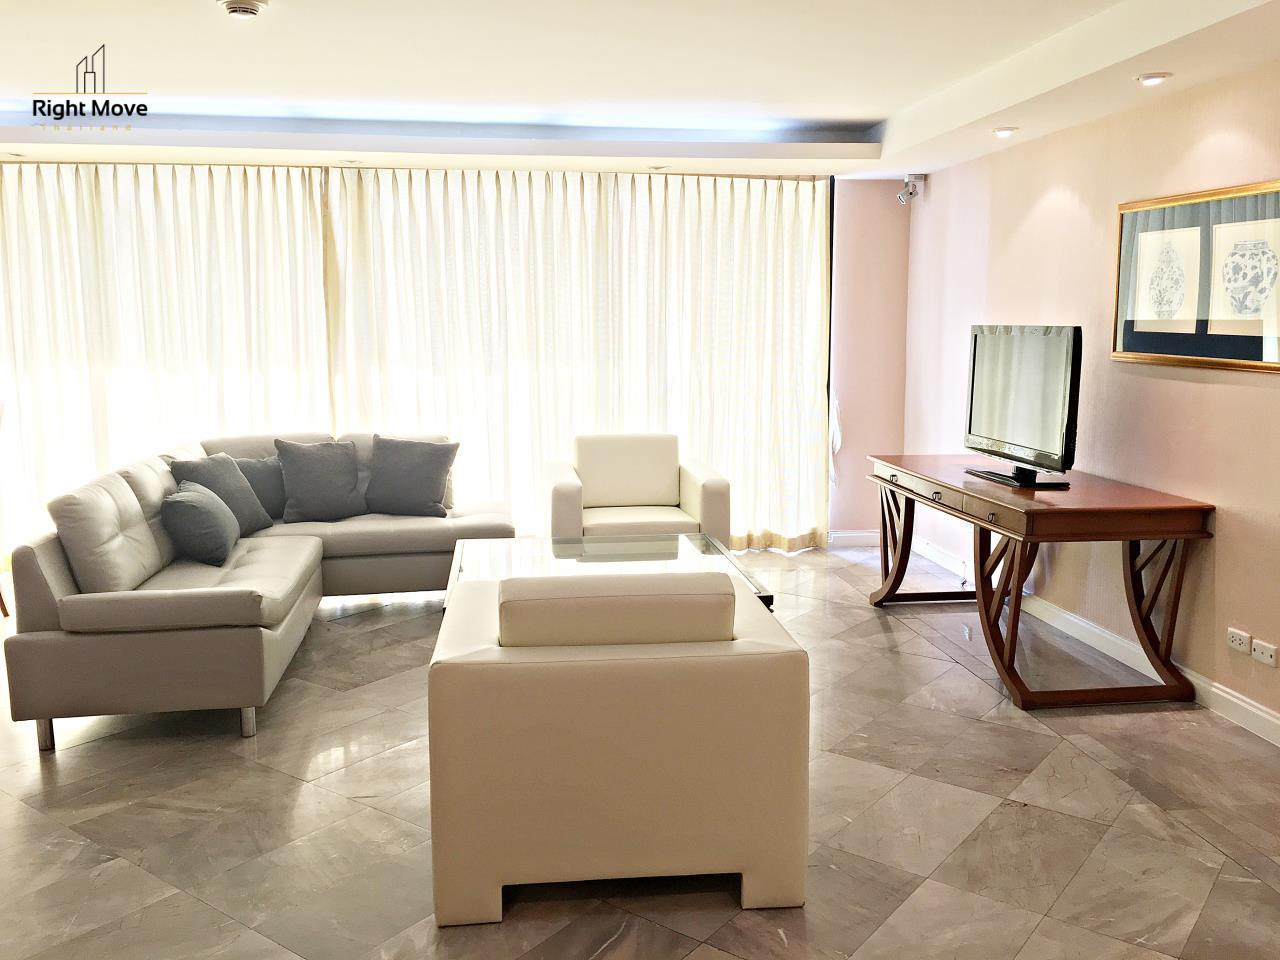 Right Move Thailand Agency's CA5243 Somkid Gardens For Rent 120,000 THB 4 Bedrooms 250 Sqm 2